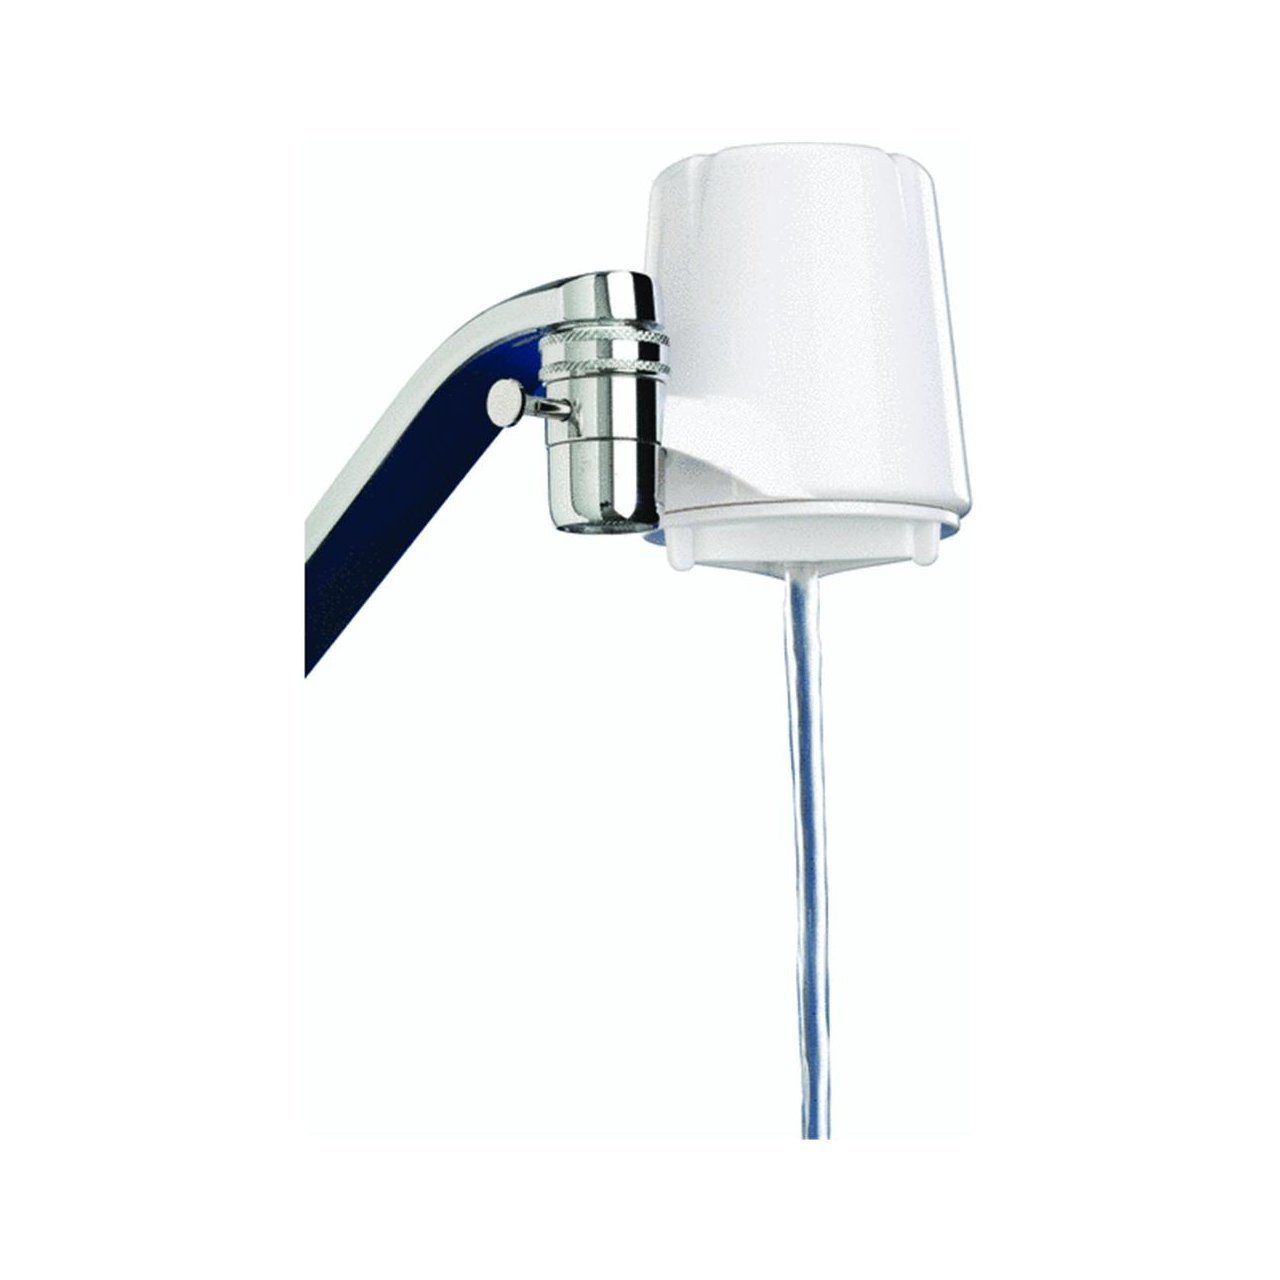 Ideas, faucet water filter reviews water filters center within measurements 1280 x 1280  .